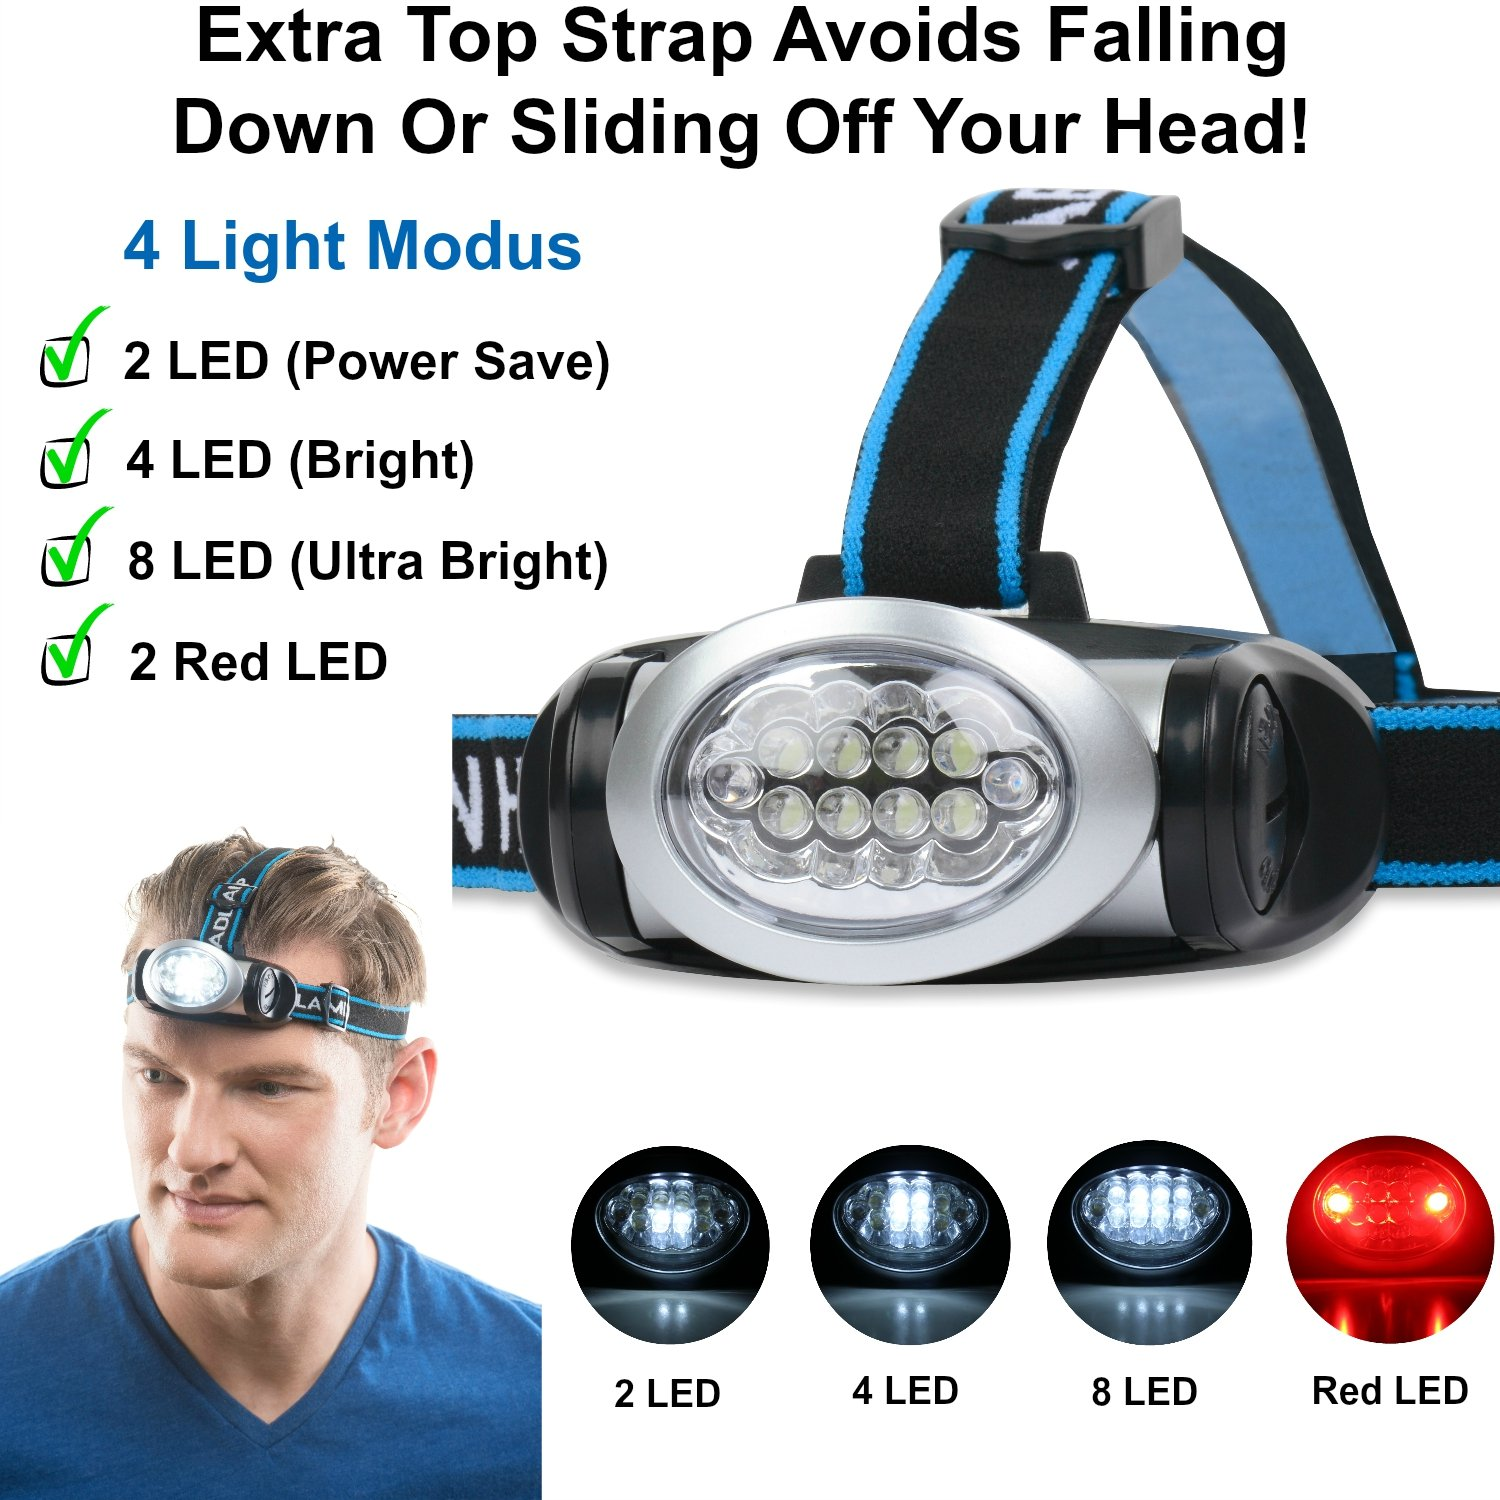 led headlamp flashlight with red lights for running